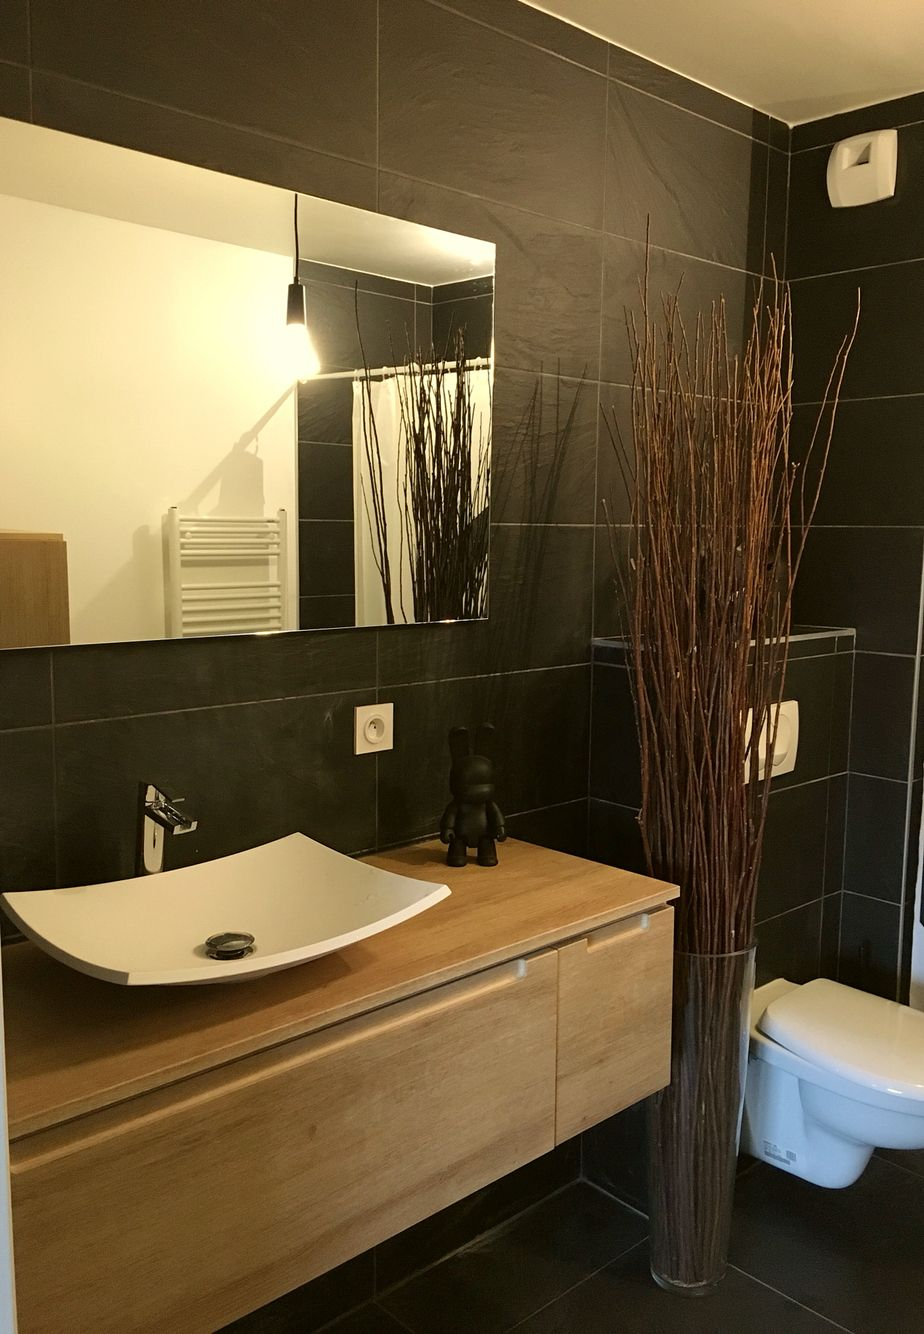 Salle de bain, noir, ardoise, bois, | Bathrooms | Bathroom Lighting ...